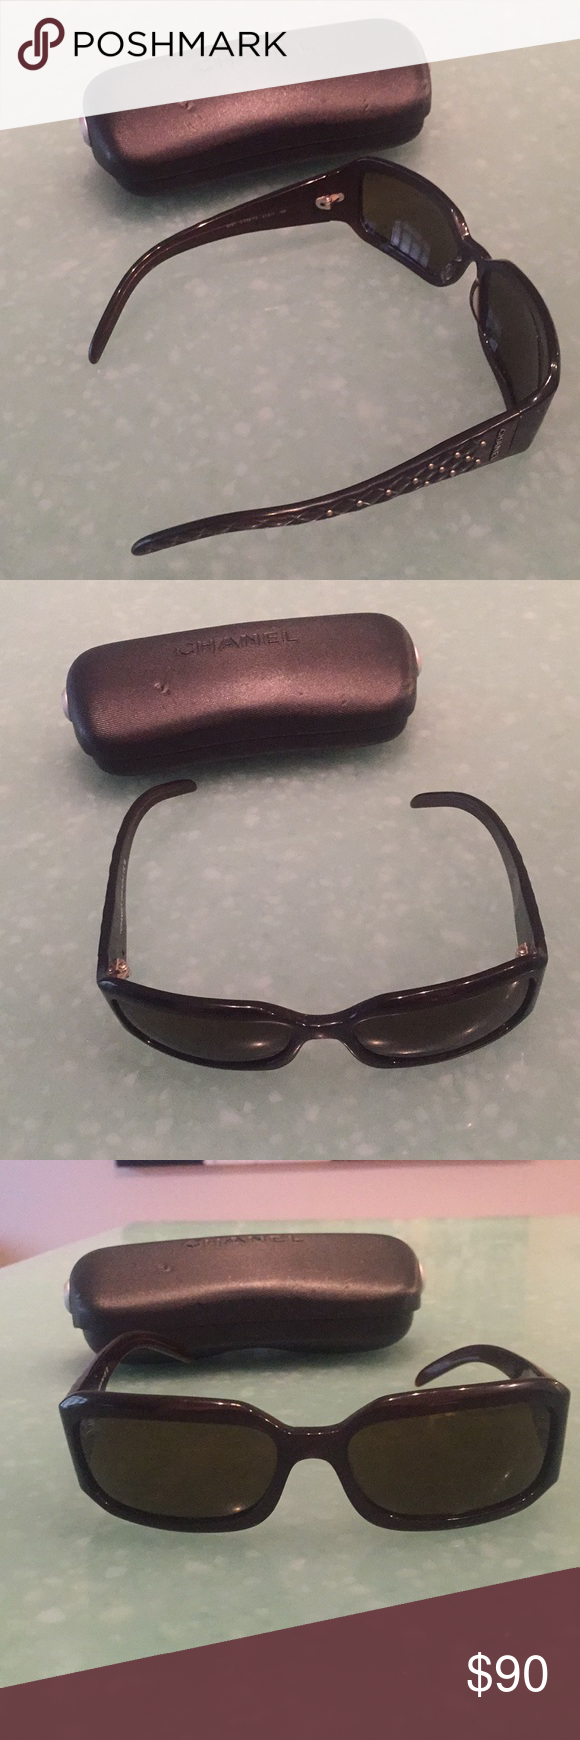 6c1fde025370 Chanel sunglasses Authentic Chanel Sunglasses with side studs with case. CHANEL  Accessories Sunglasses